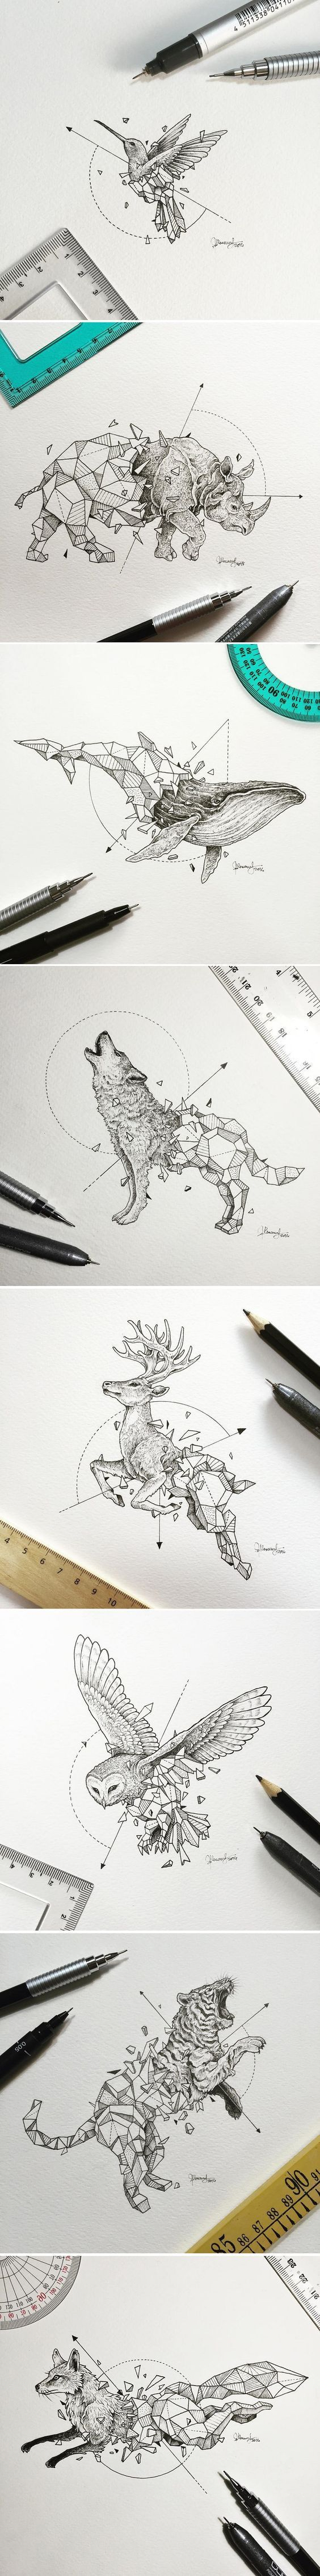 Philippines-based designer Kerby Rosanes has been doing intricate artwork with a simple collection of black pens for years now. One of his more recent projects caught our attention though, and it's because of the way it mixes two different styles so well that it might as well be the peanut butter and jelly of illustration. Take a look!: